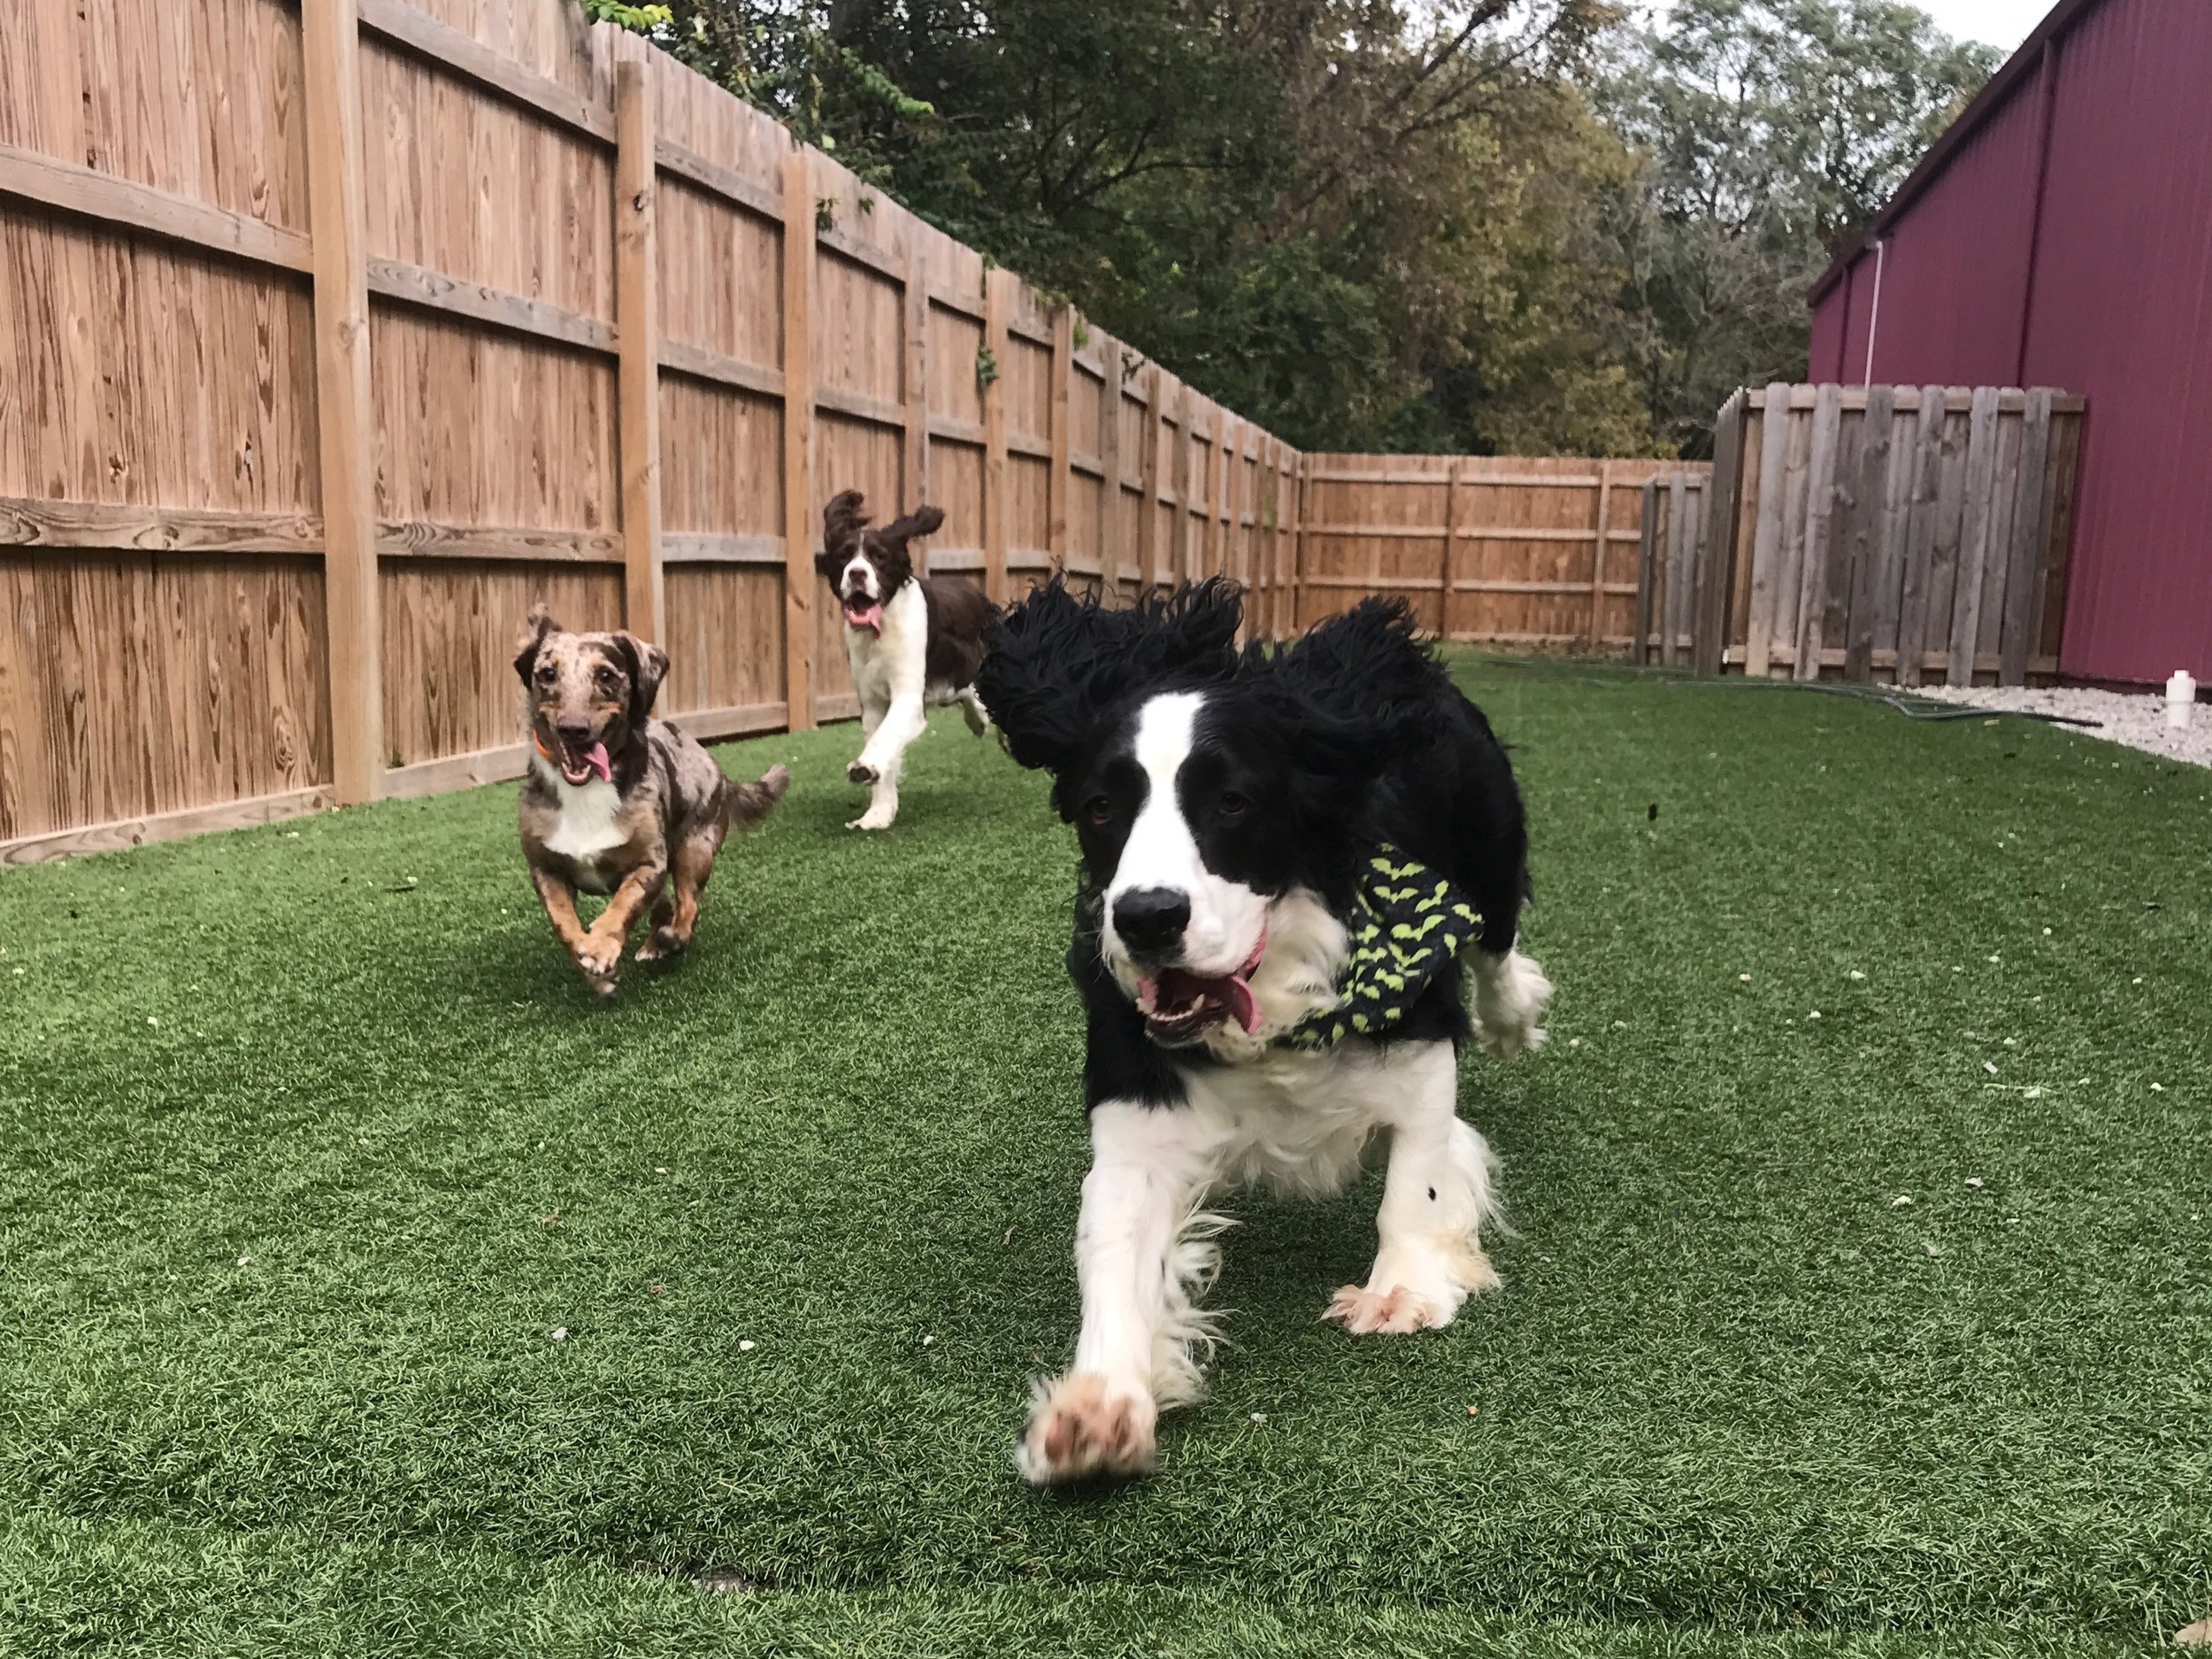 Dog daycare - Daycare can have numerous benefits for dogs and their owners.